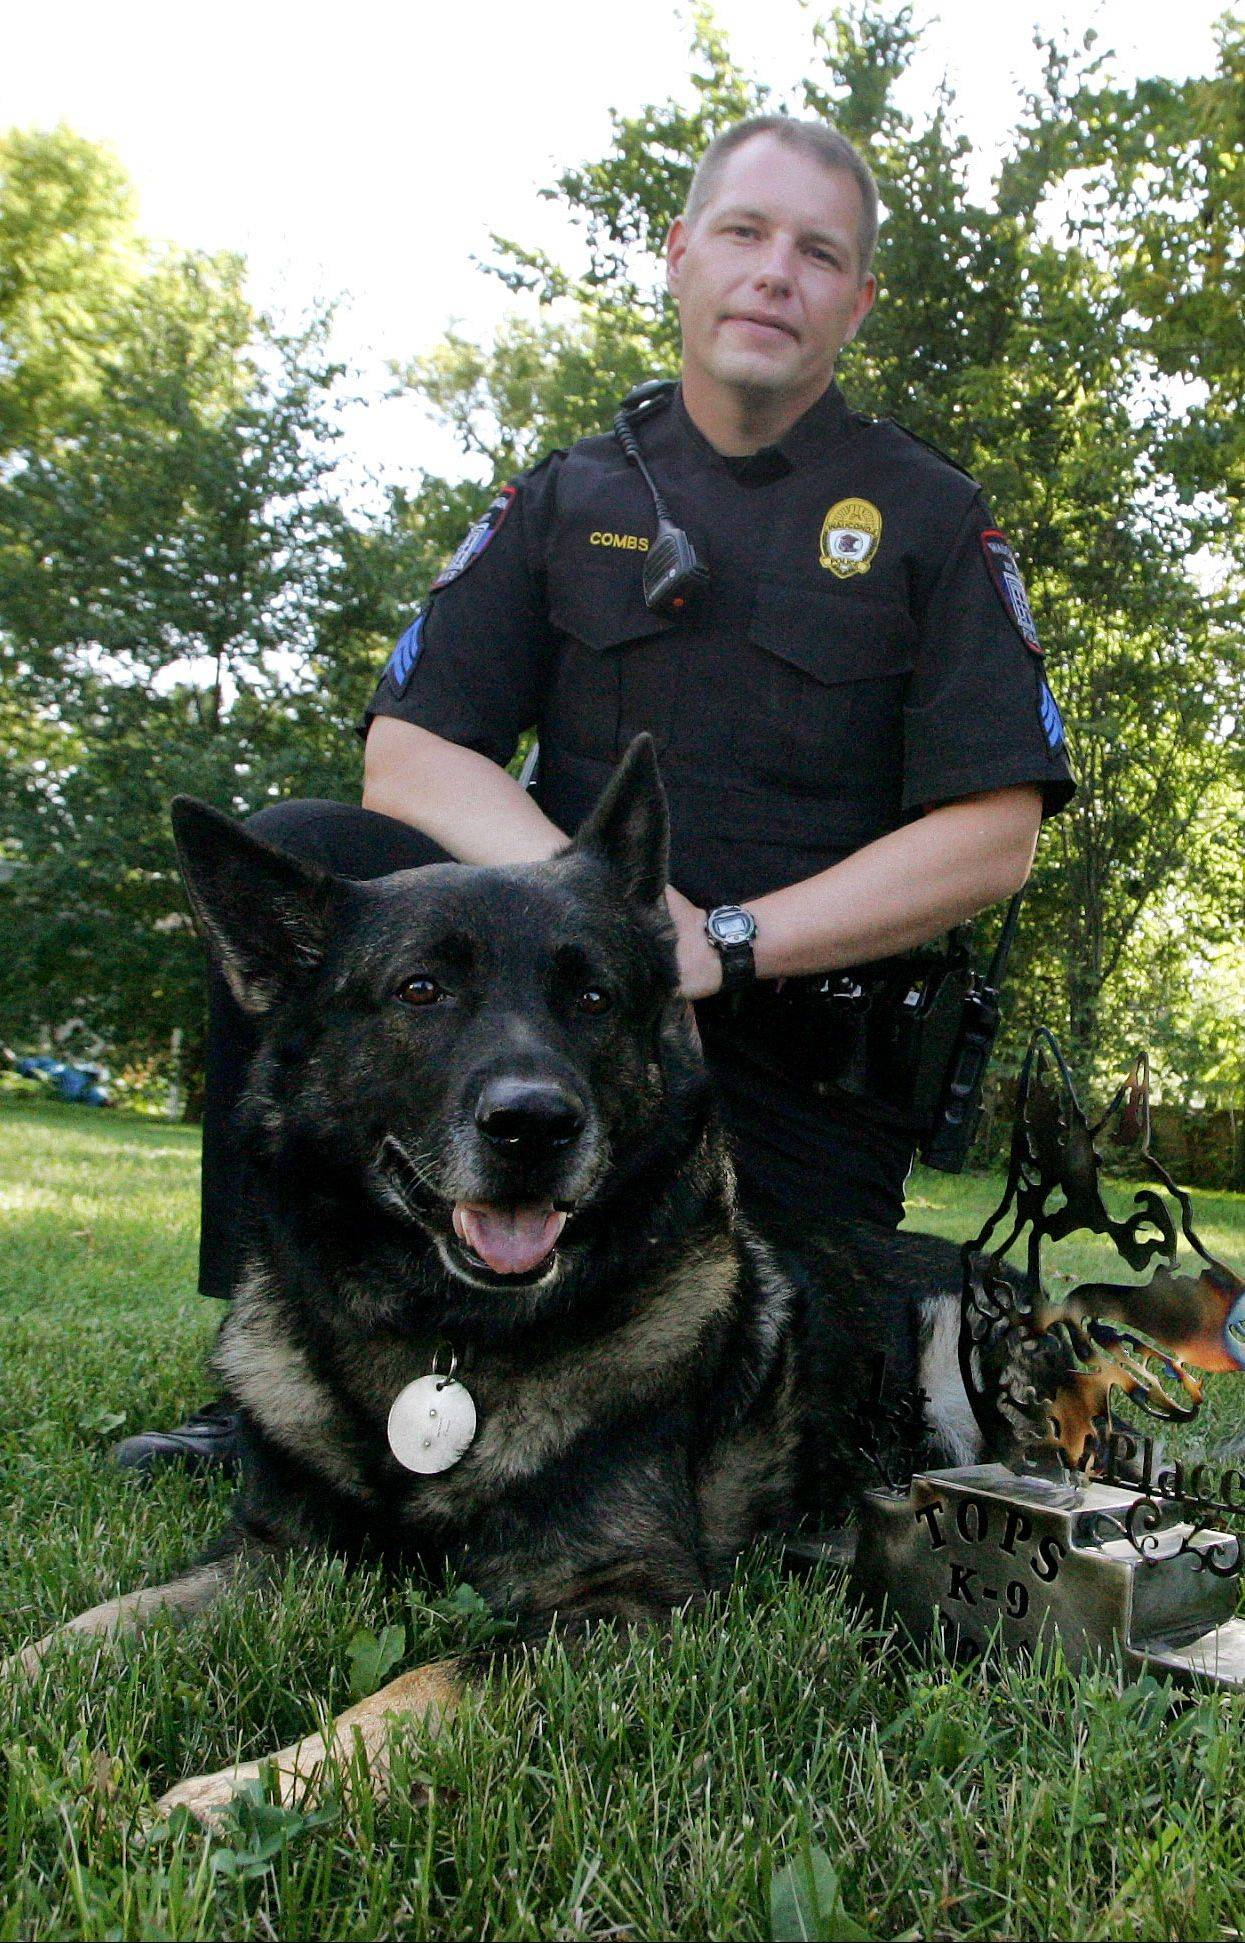 Wauconda police Sgt. John Combs and his canine partner, Maxx. Maxx is retiring in May. A new police dog, a German shepherd named Varro, will begin next week.